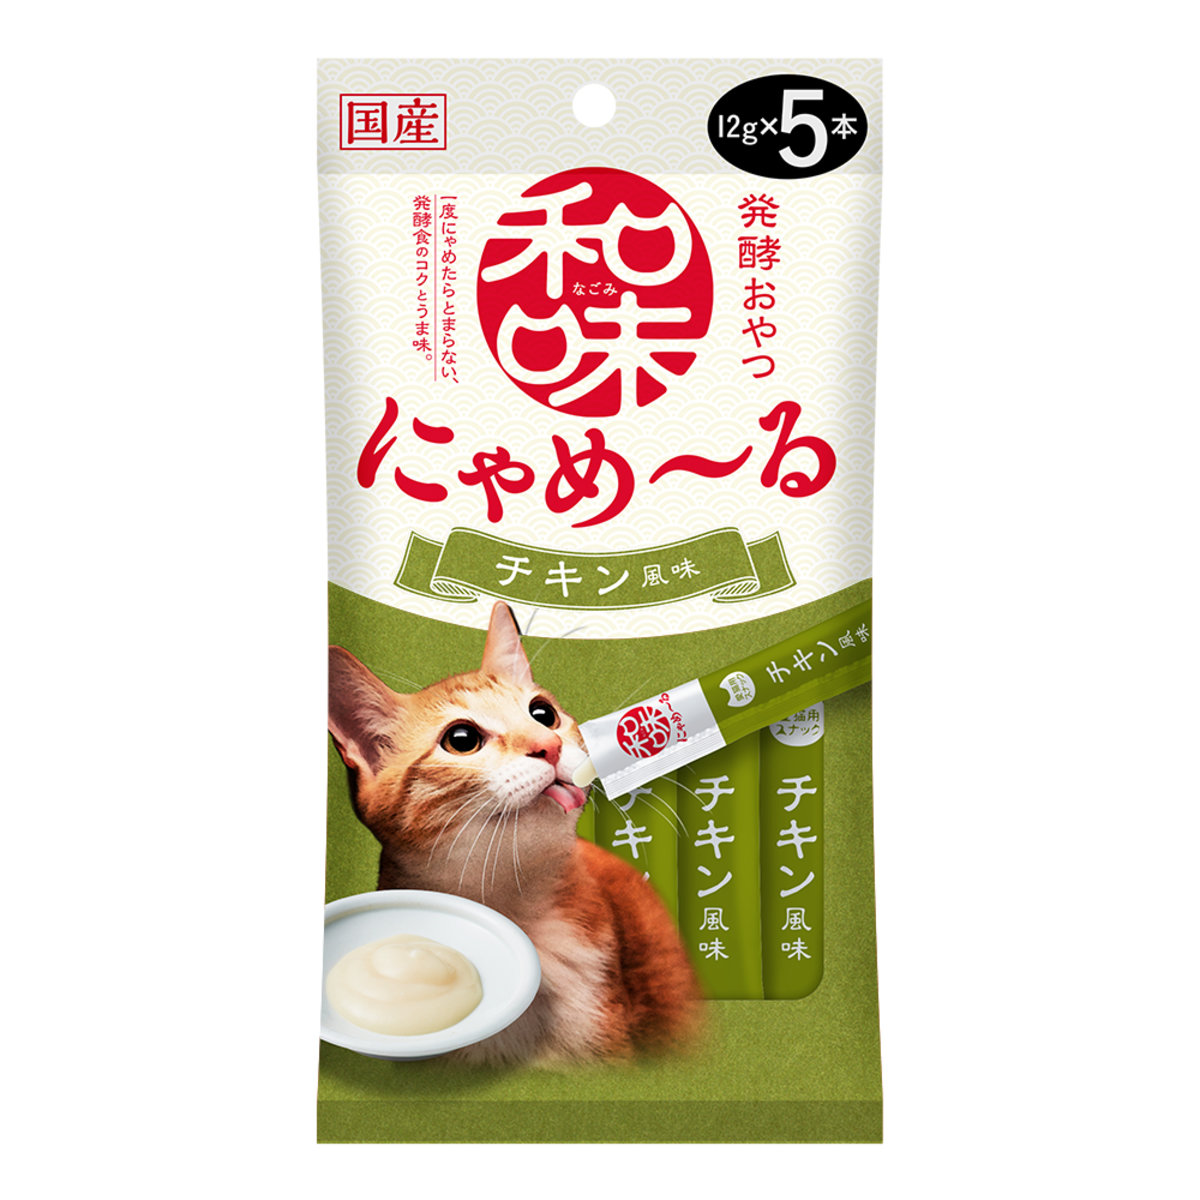 Nagomi Chicken Creamy for Cats 12